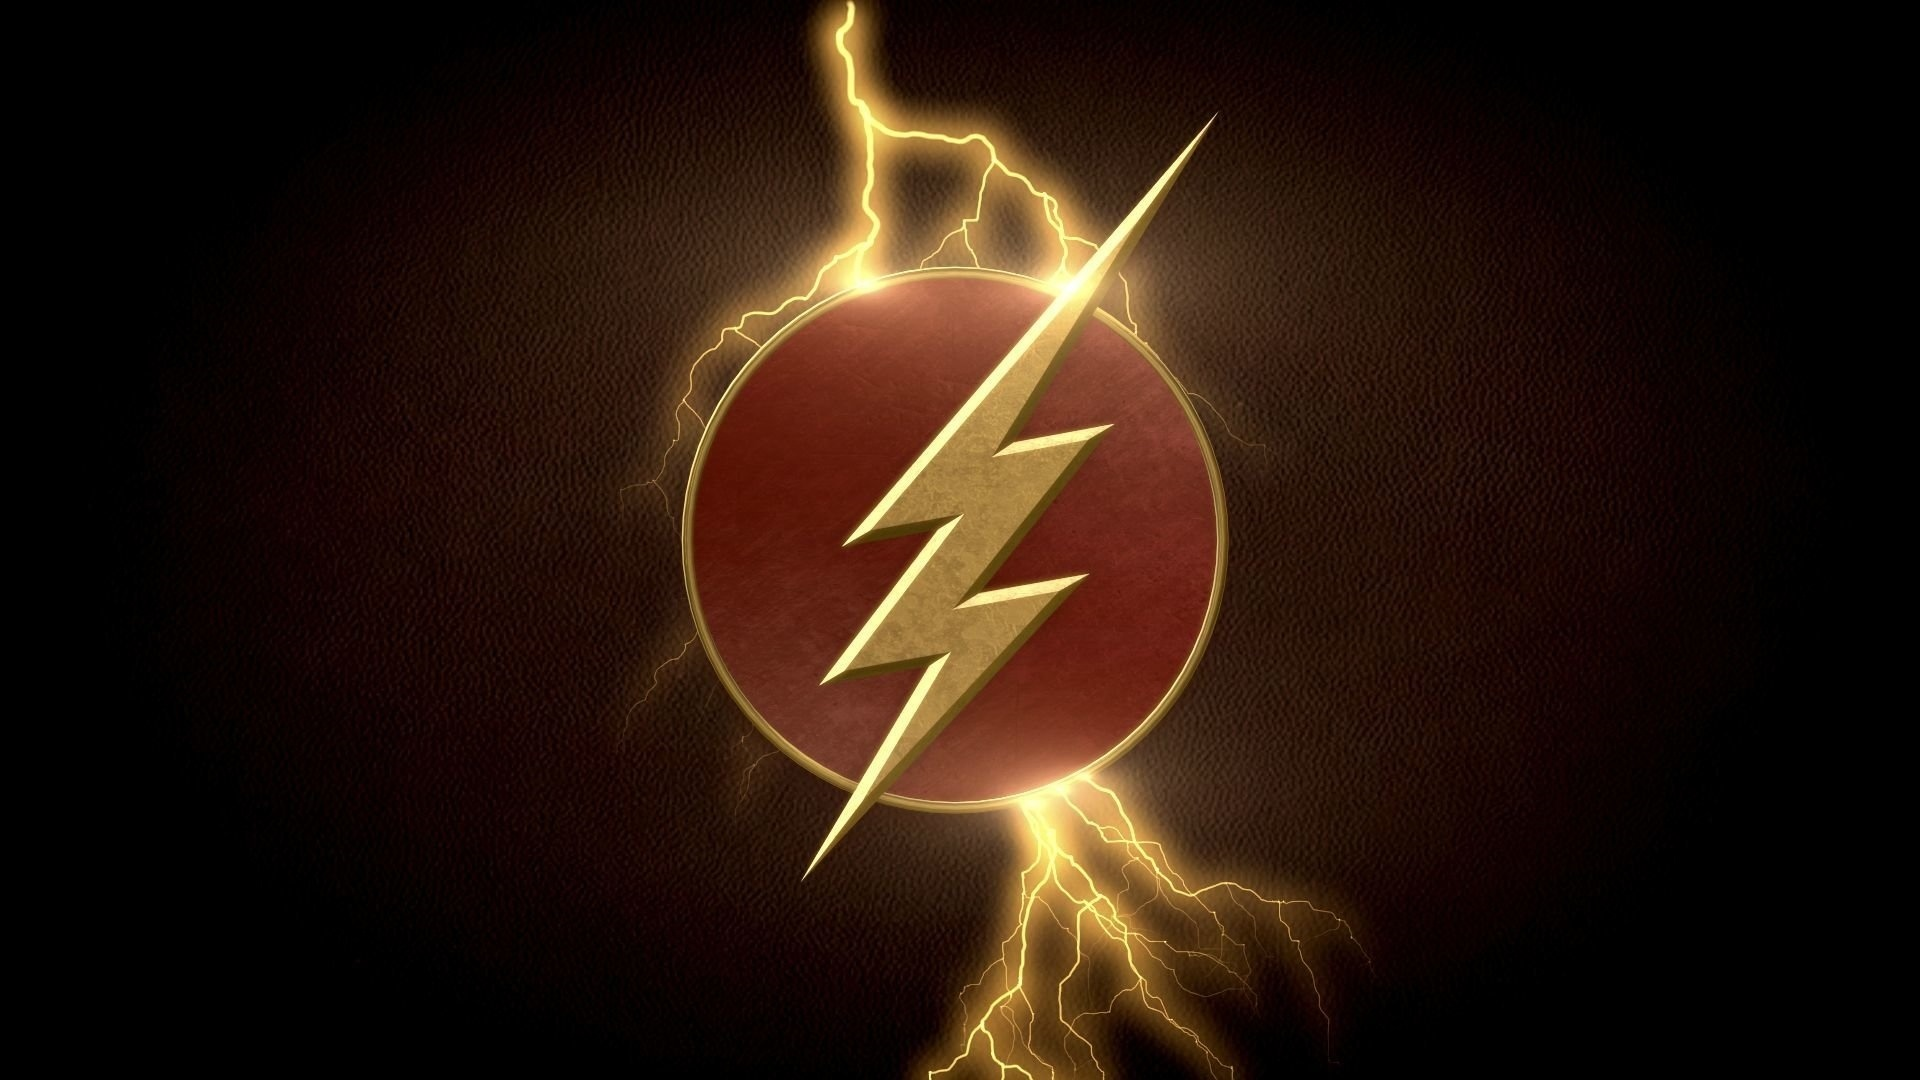 The Flash cool background